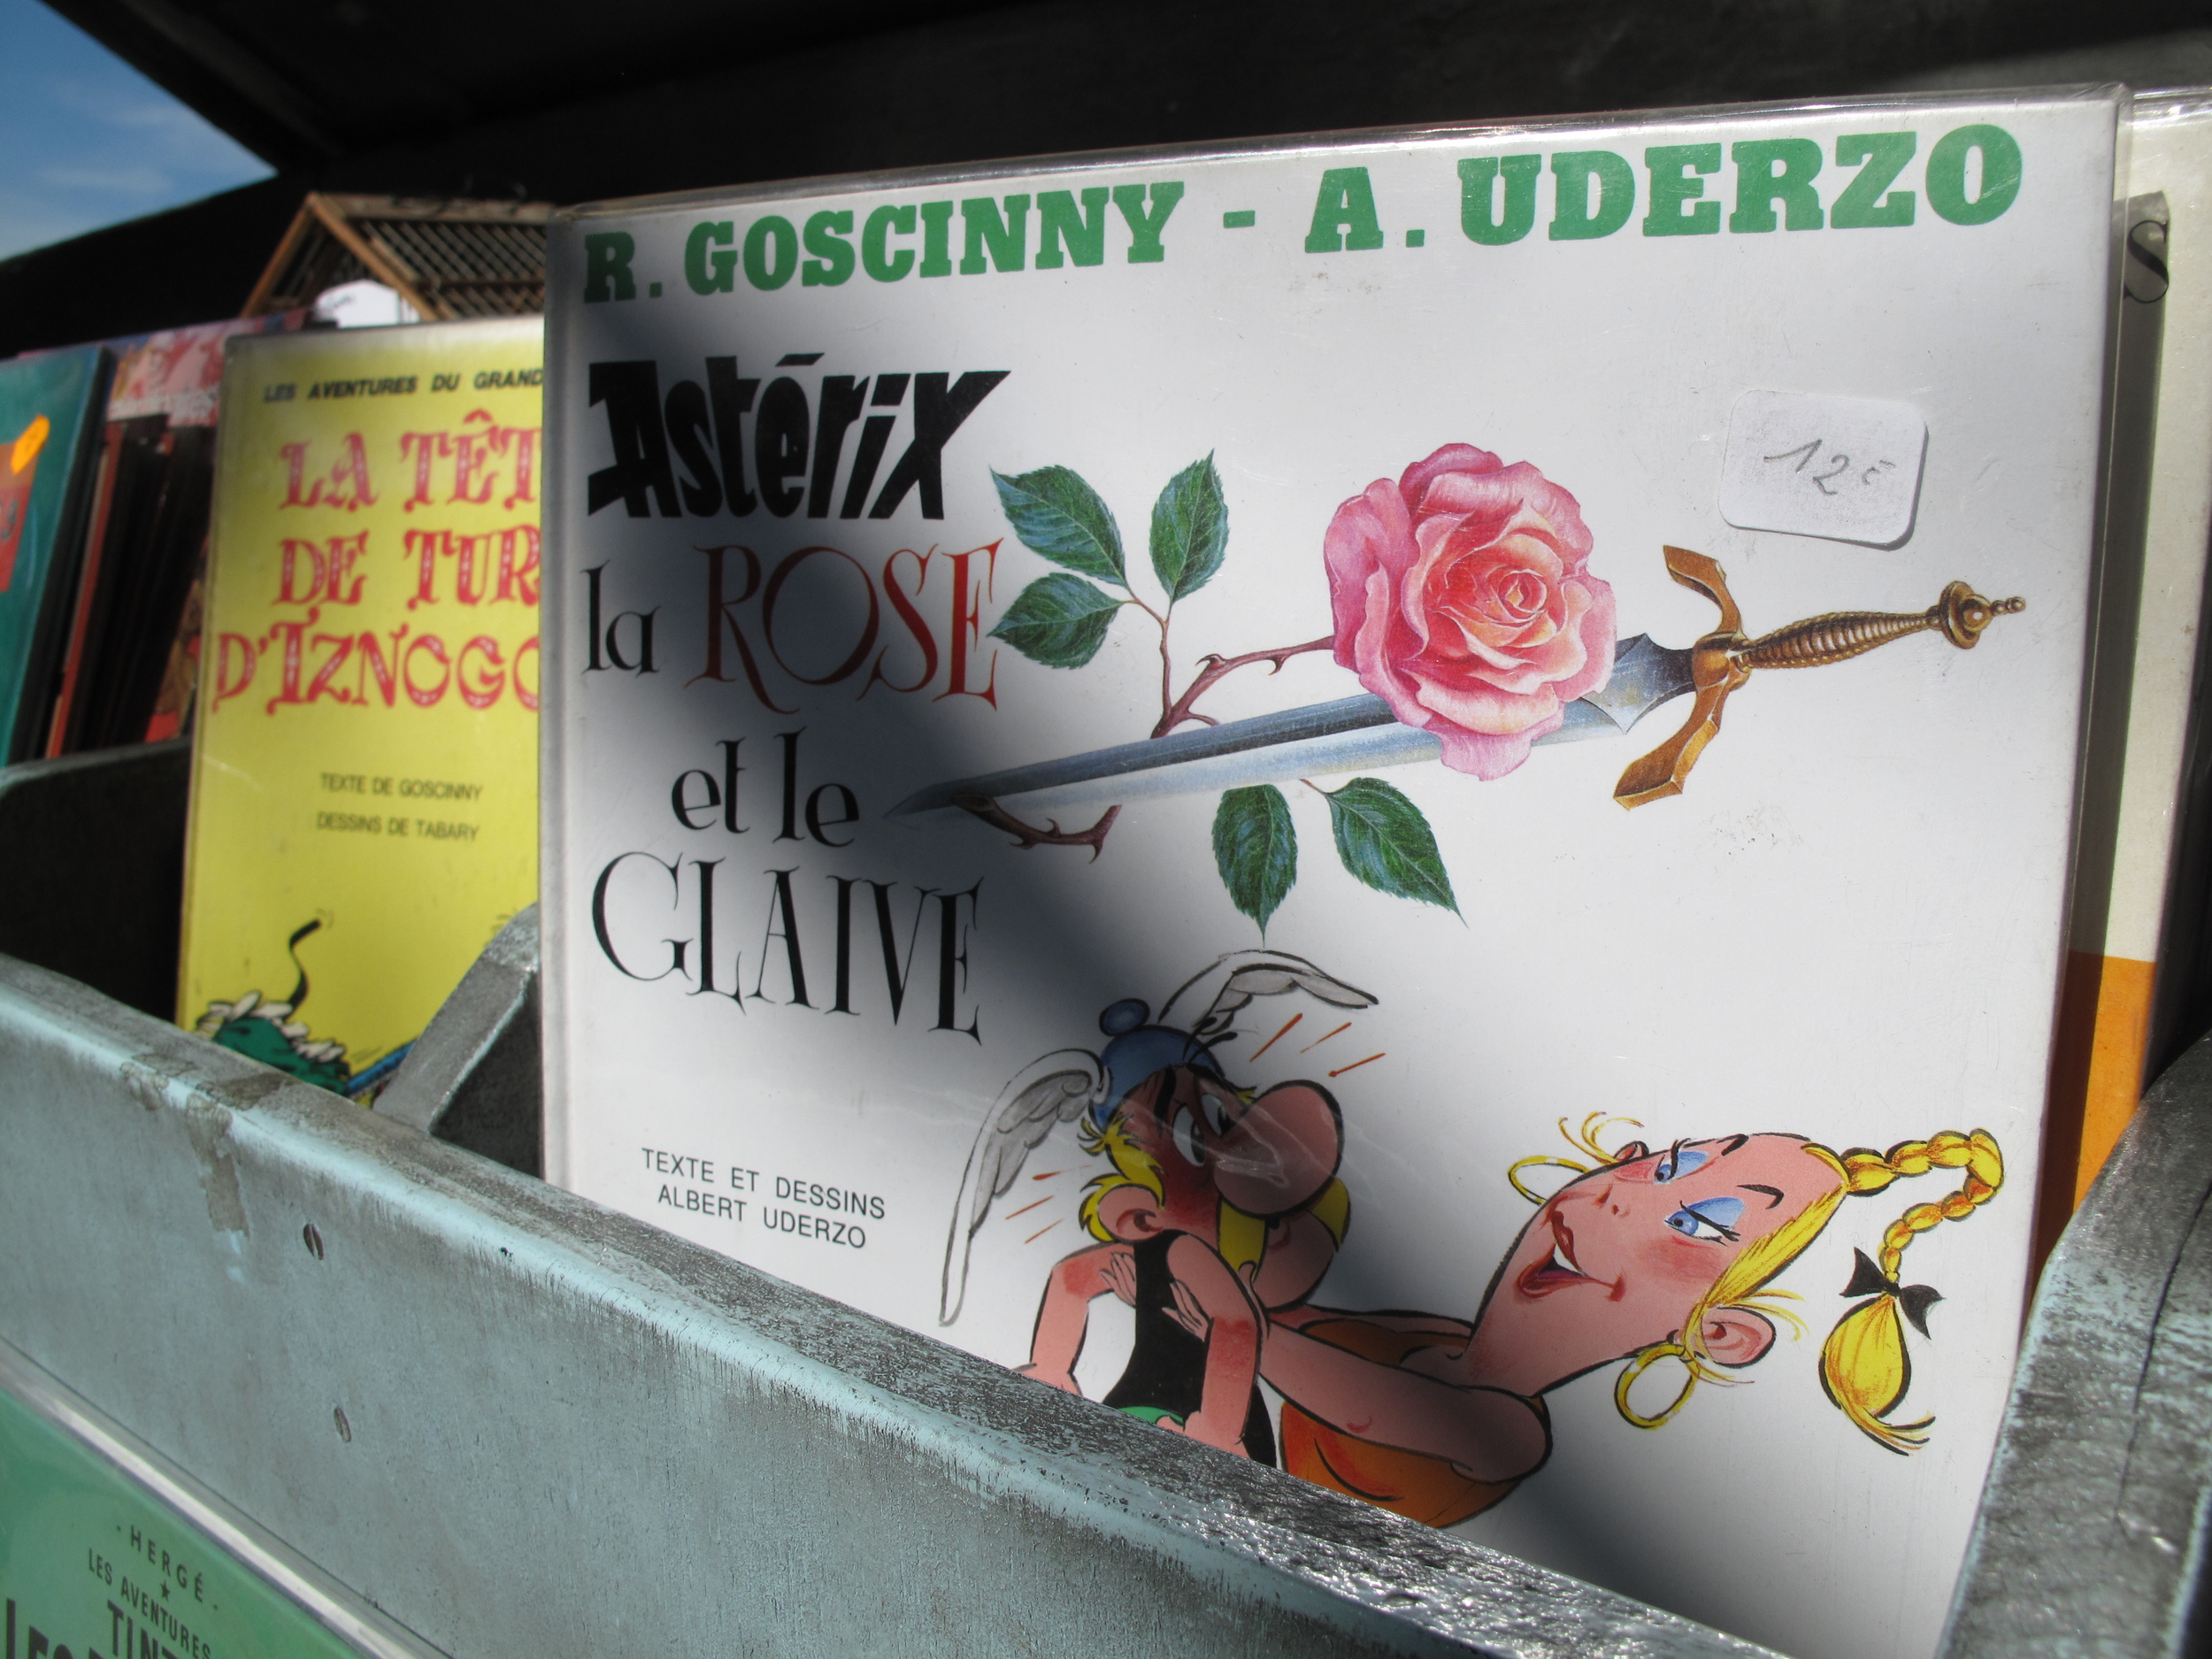 Books of Asterix and Obelix at a bouquiniste on the Seine